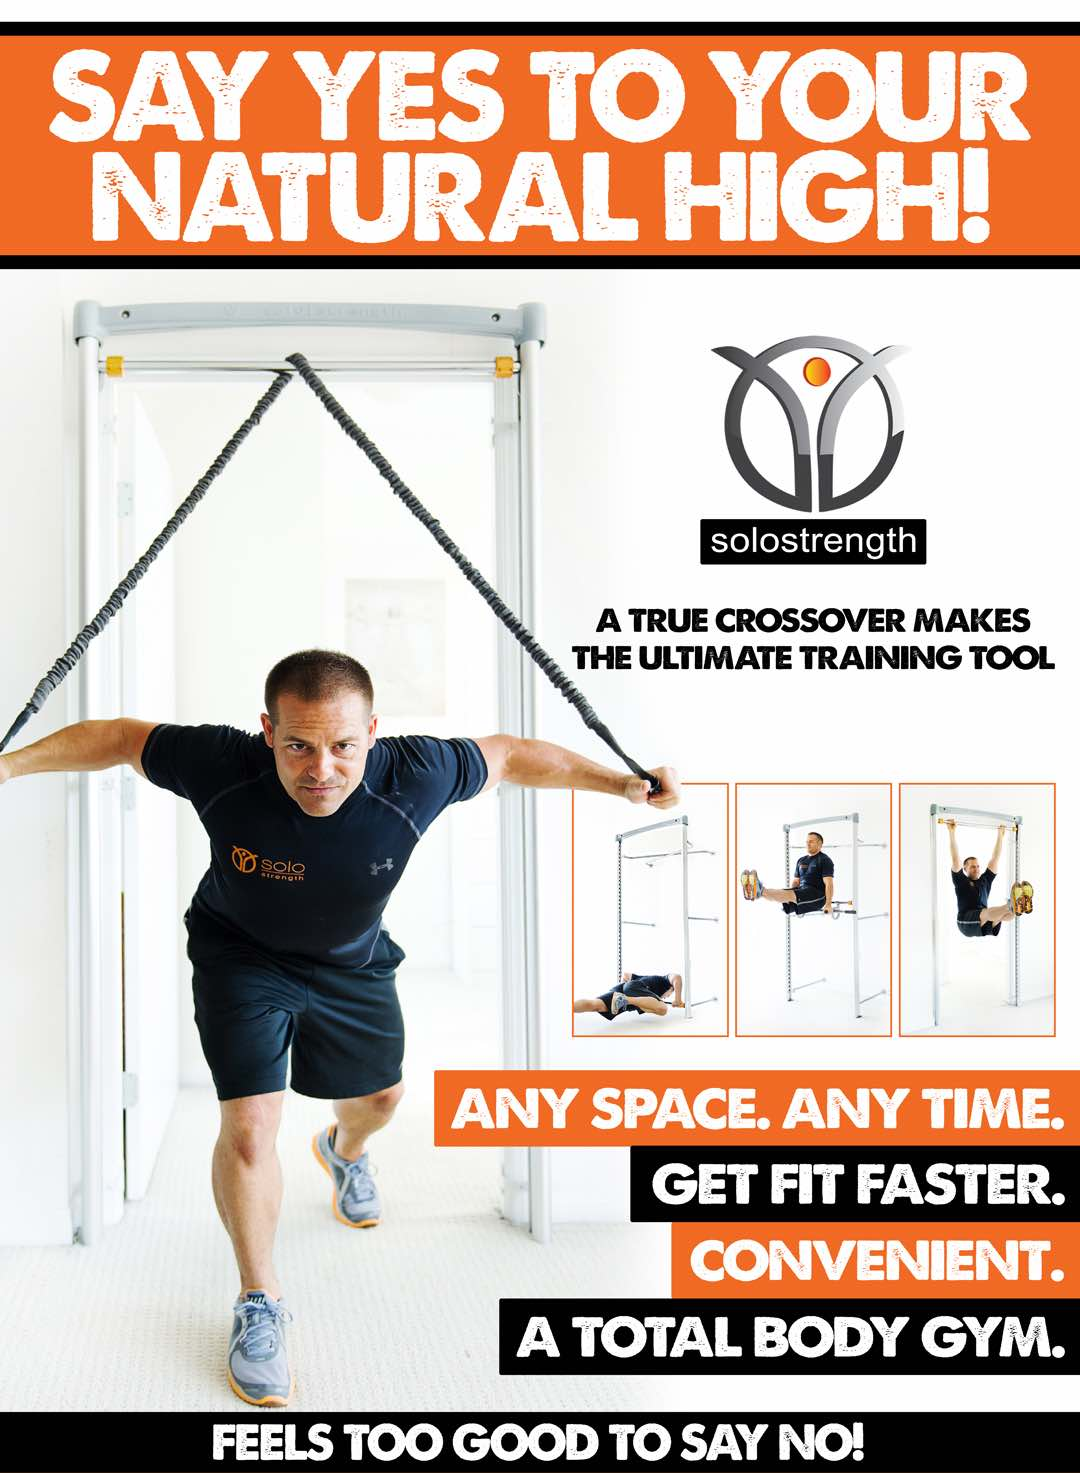 Solostrength get fit faster world's best studio and home gym systems